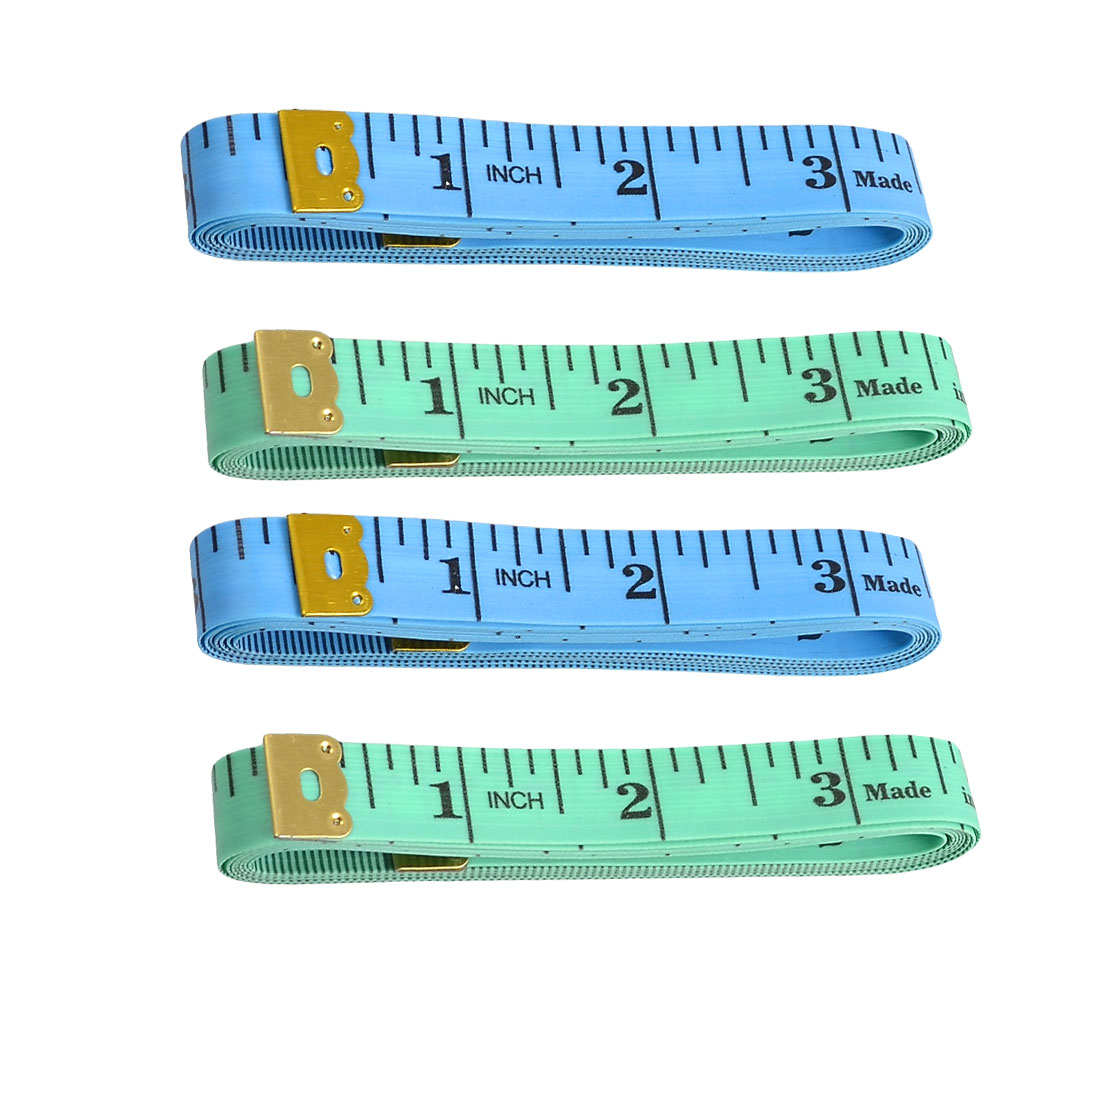 4 Pcs 1.5M 60 inch Sewing Tailor Diet Measuring Tape Measure Blue Green